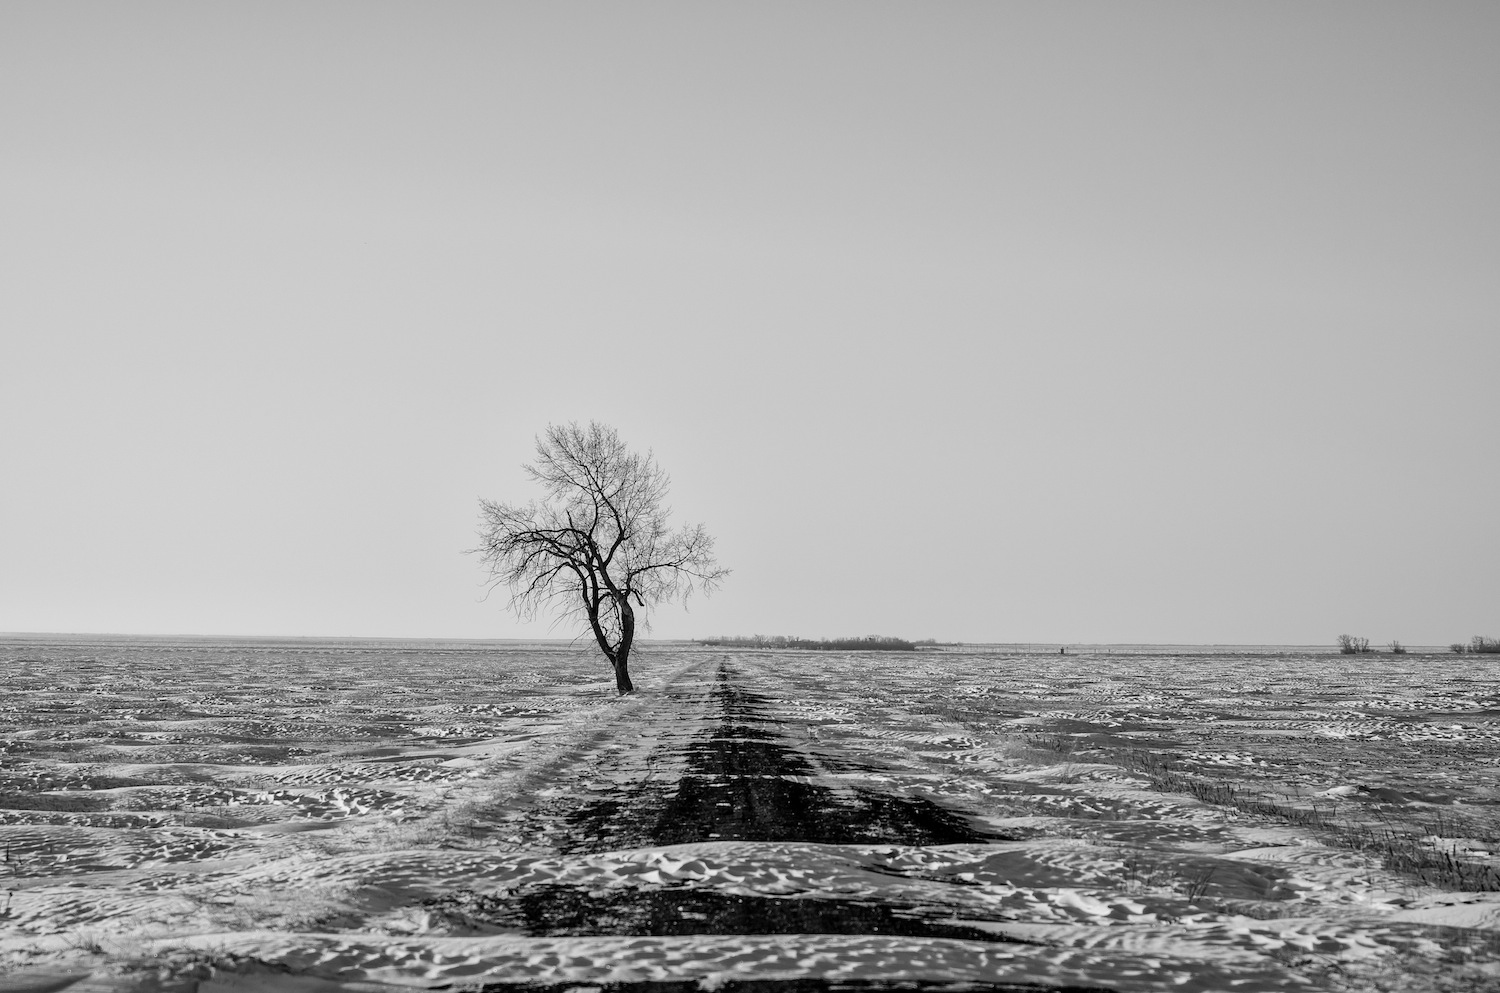 taylor_sheppard_photographer_manitoba_snow_winter_space_empty_tree_winter_cold.jpg